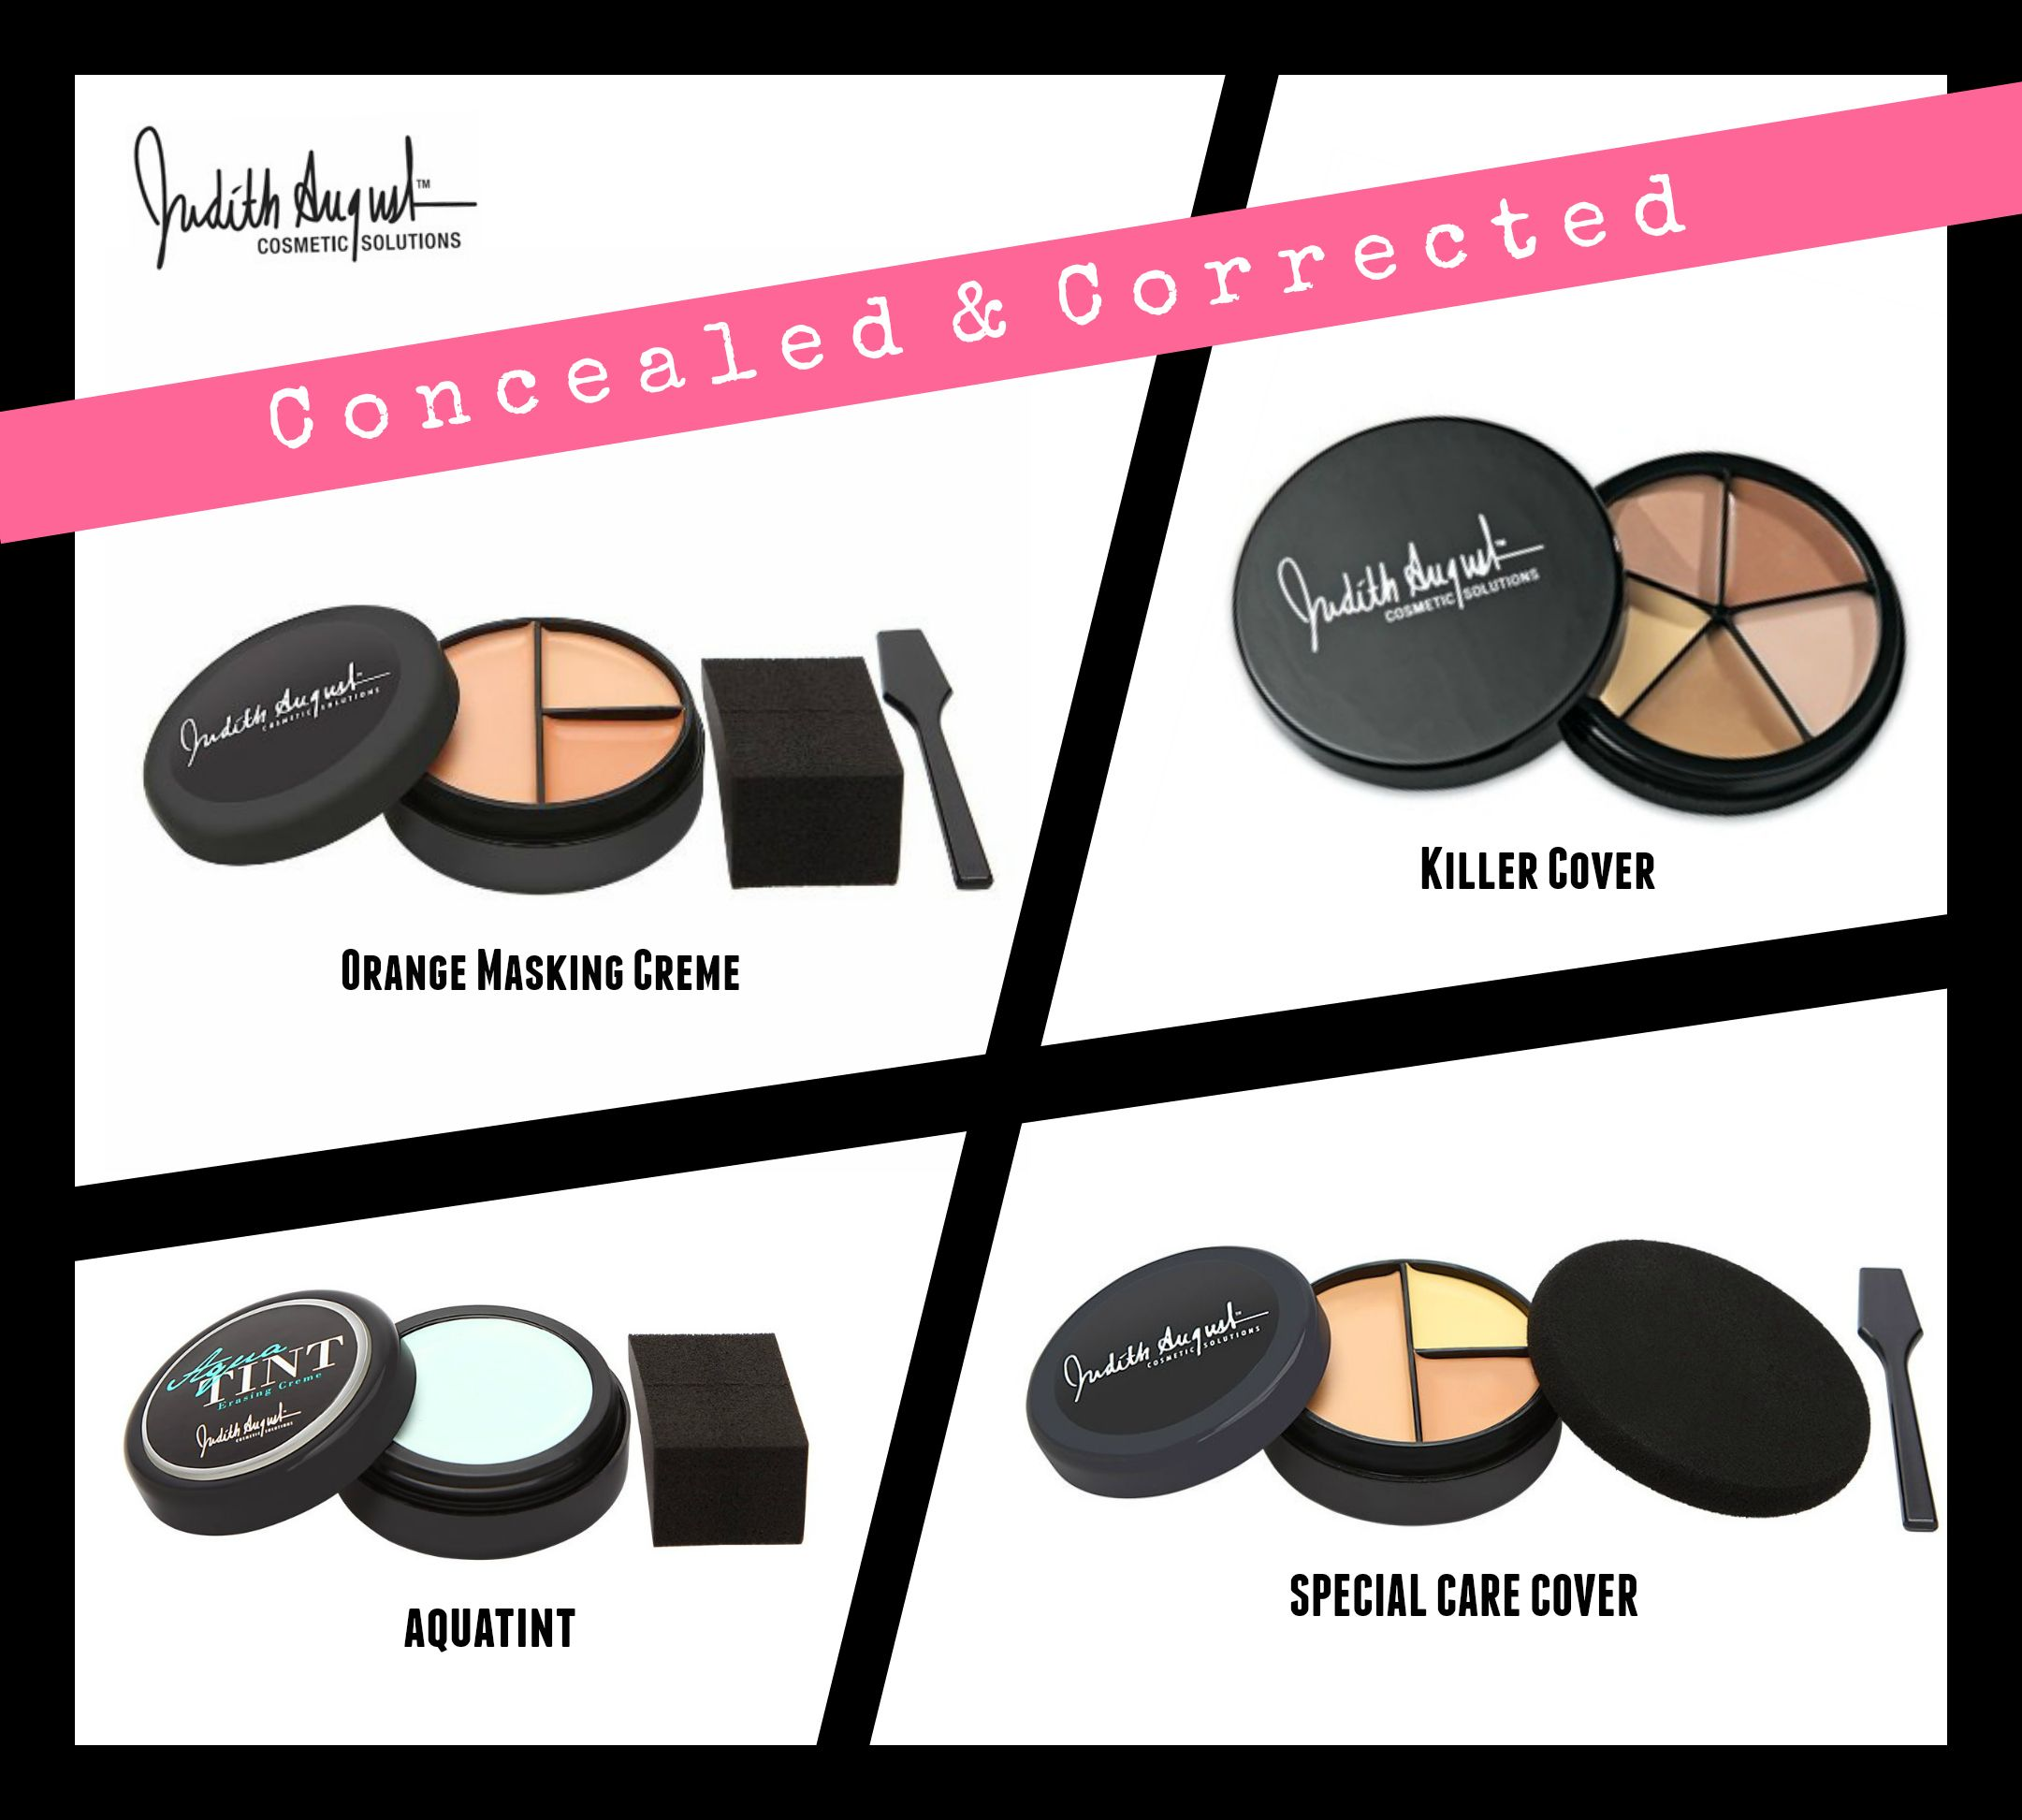 Covered, Concealed, & Corrected. Best concealer makeup to